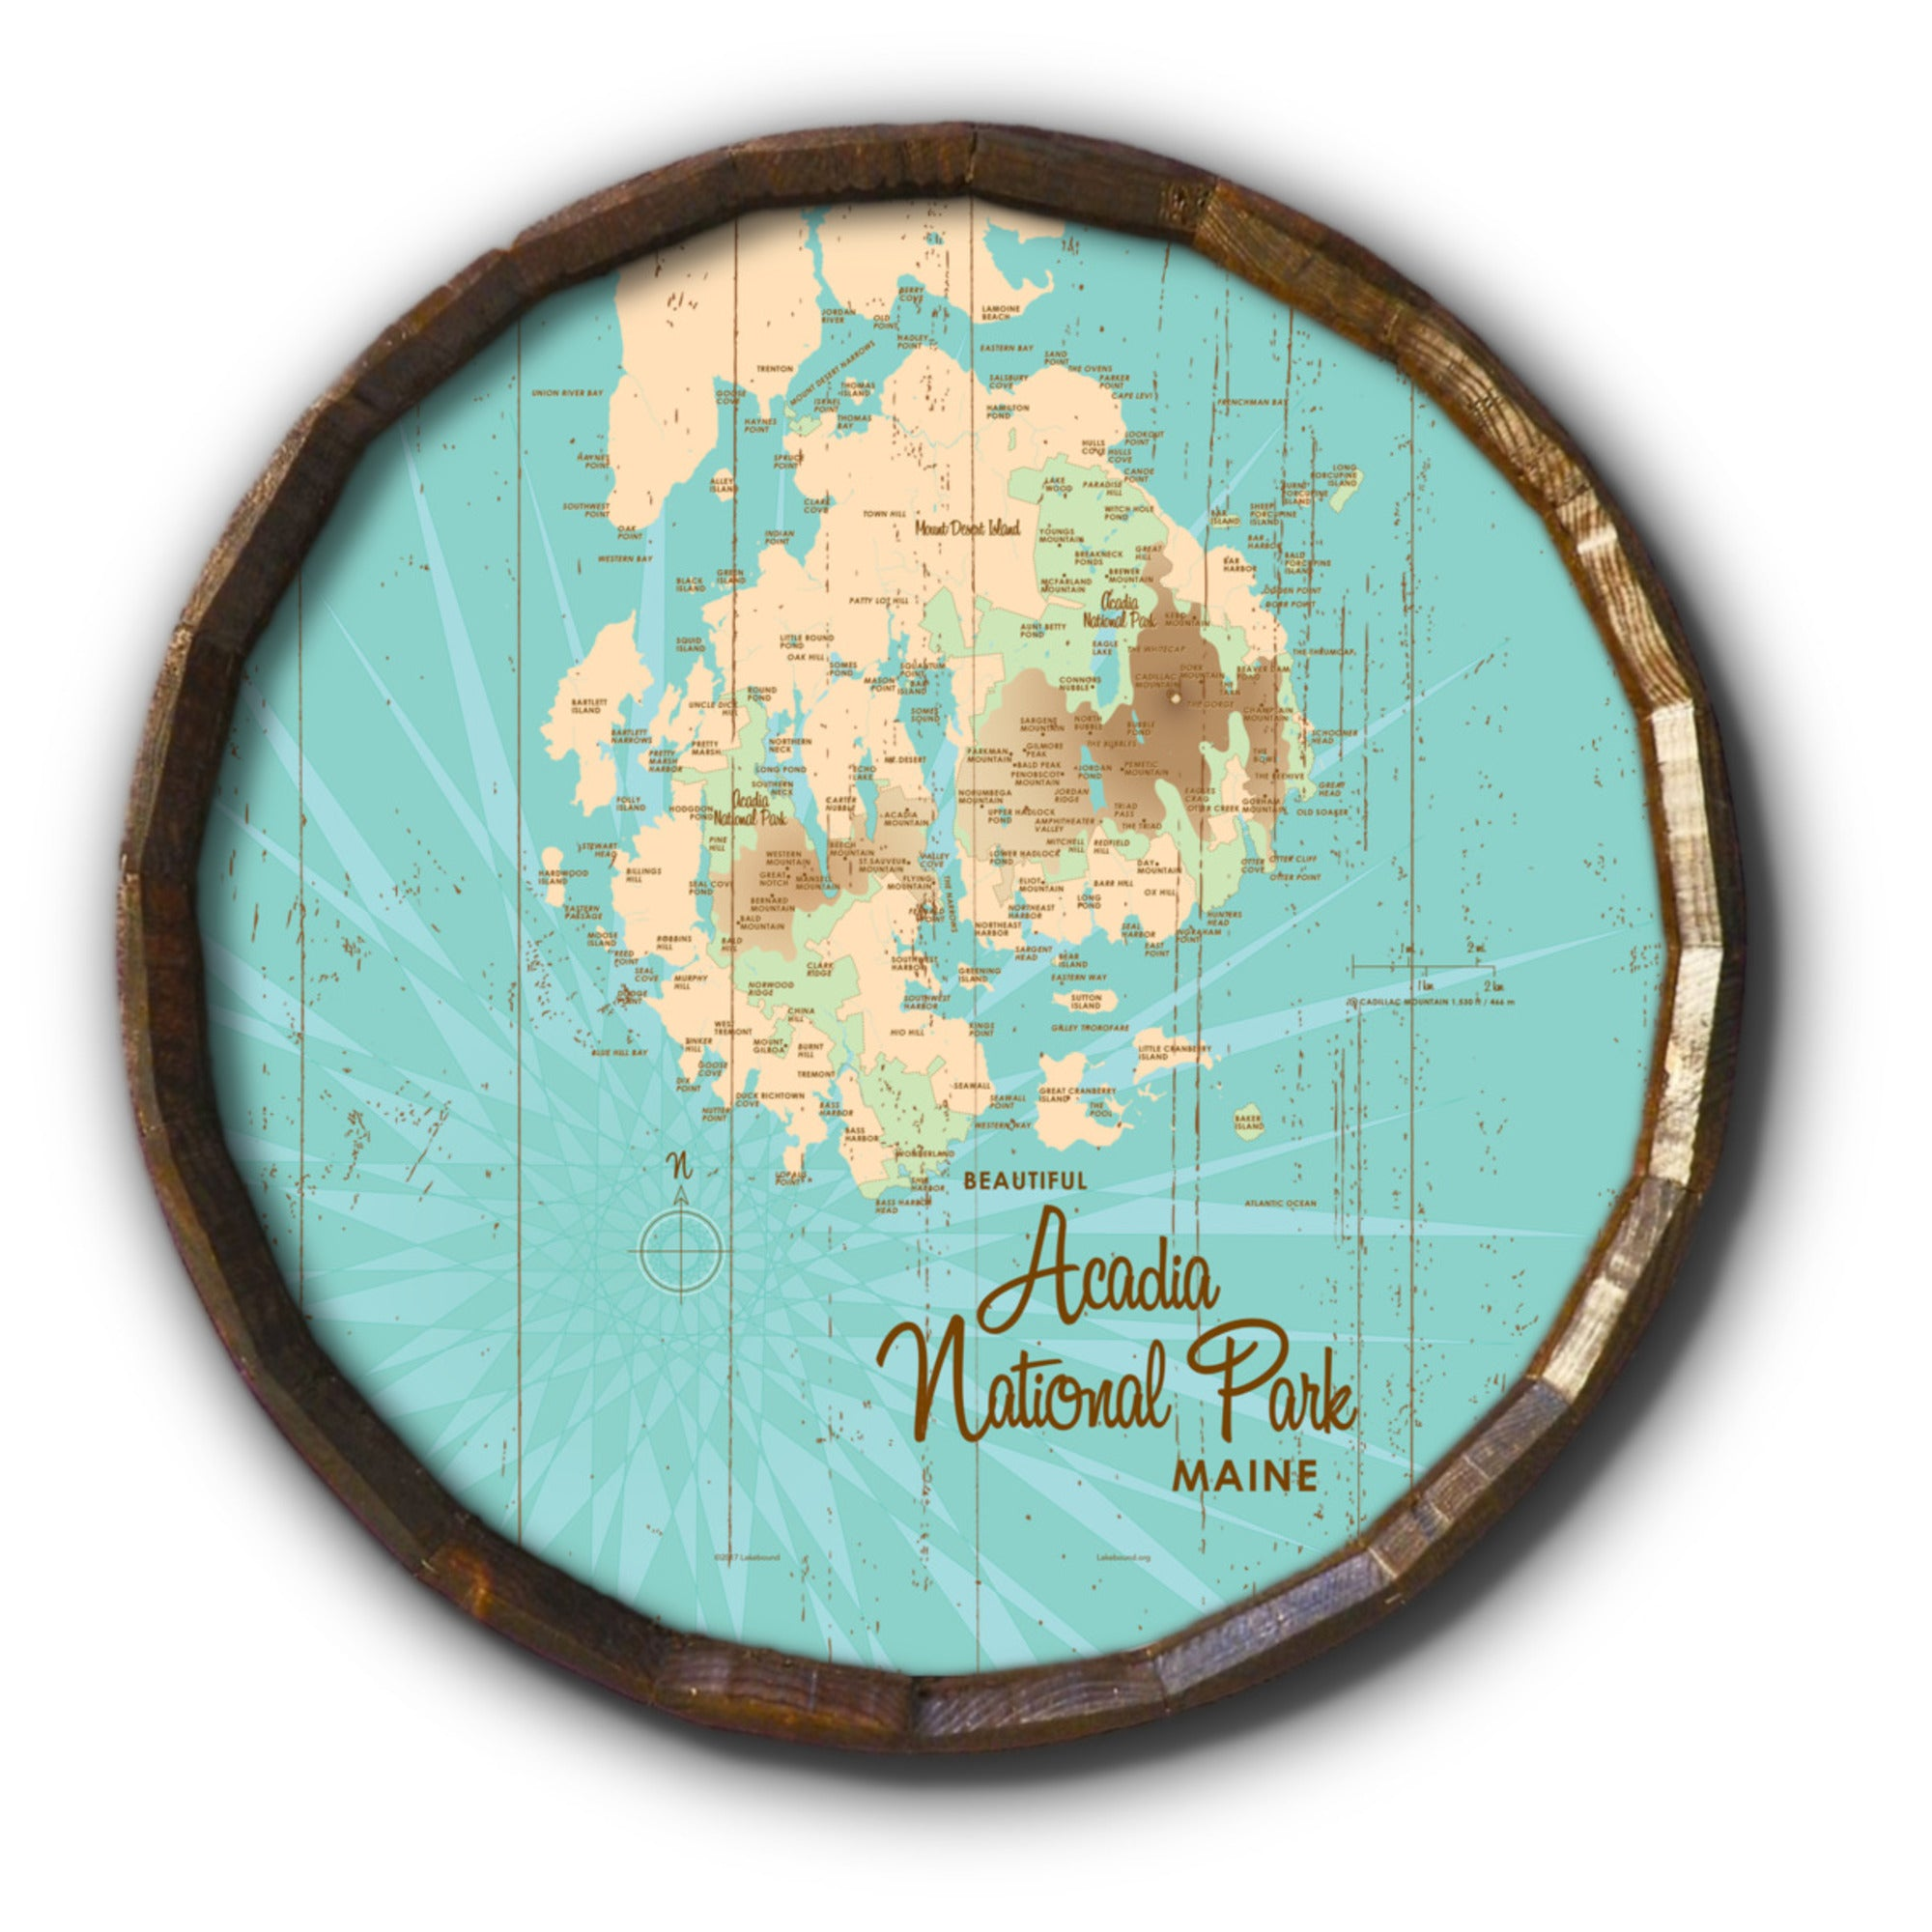 Acadia National Park , Rustic Barrel End Map Art